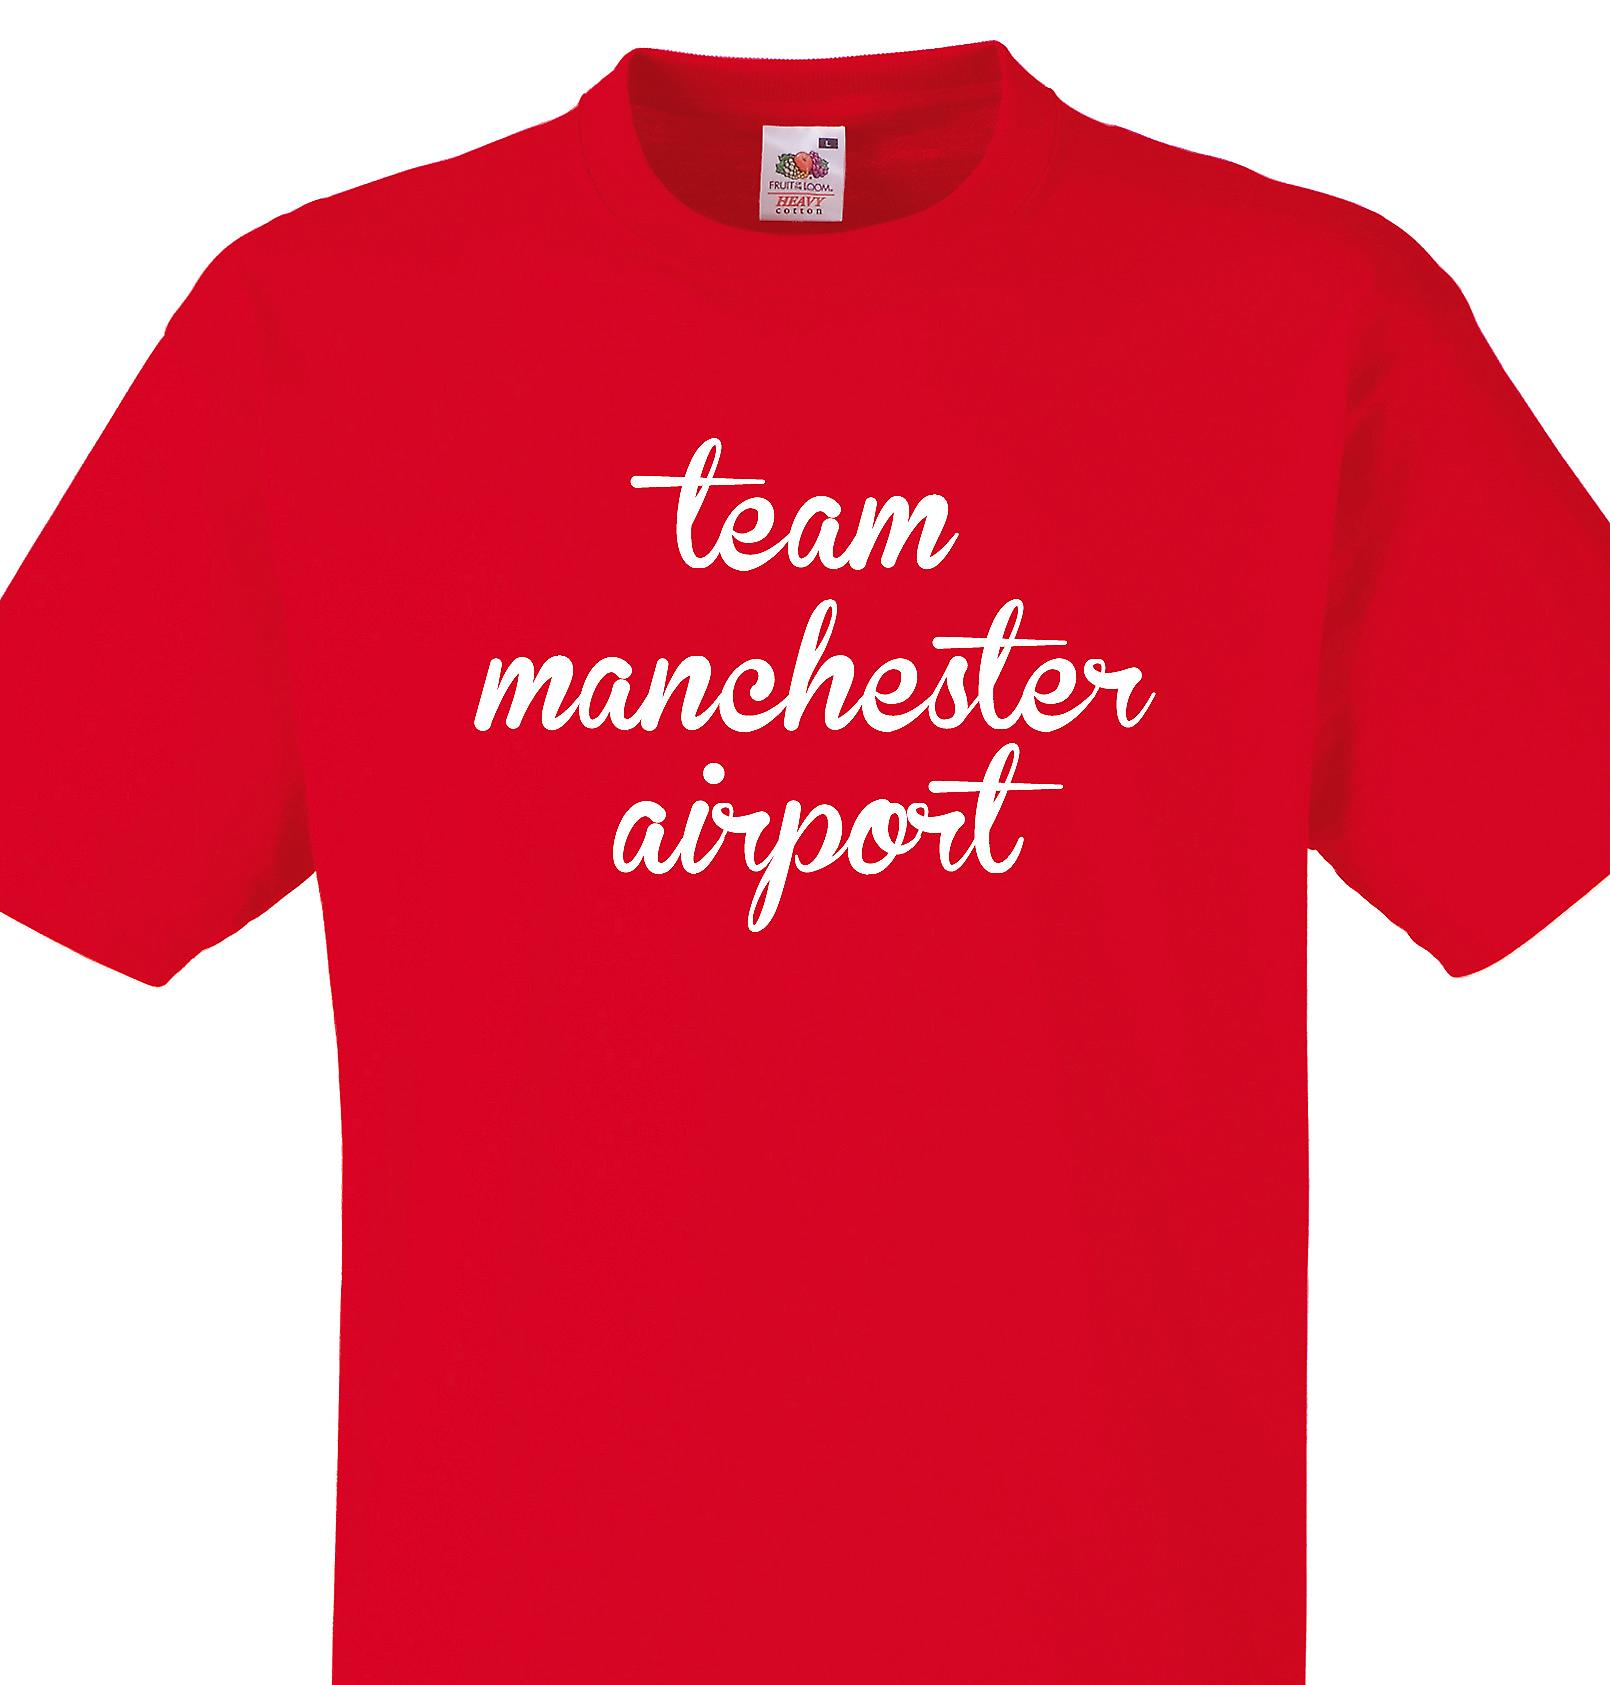 Team Manchester airport Red T shirt